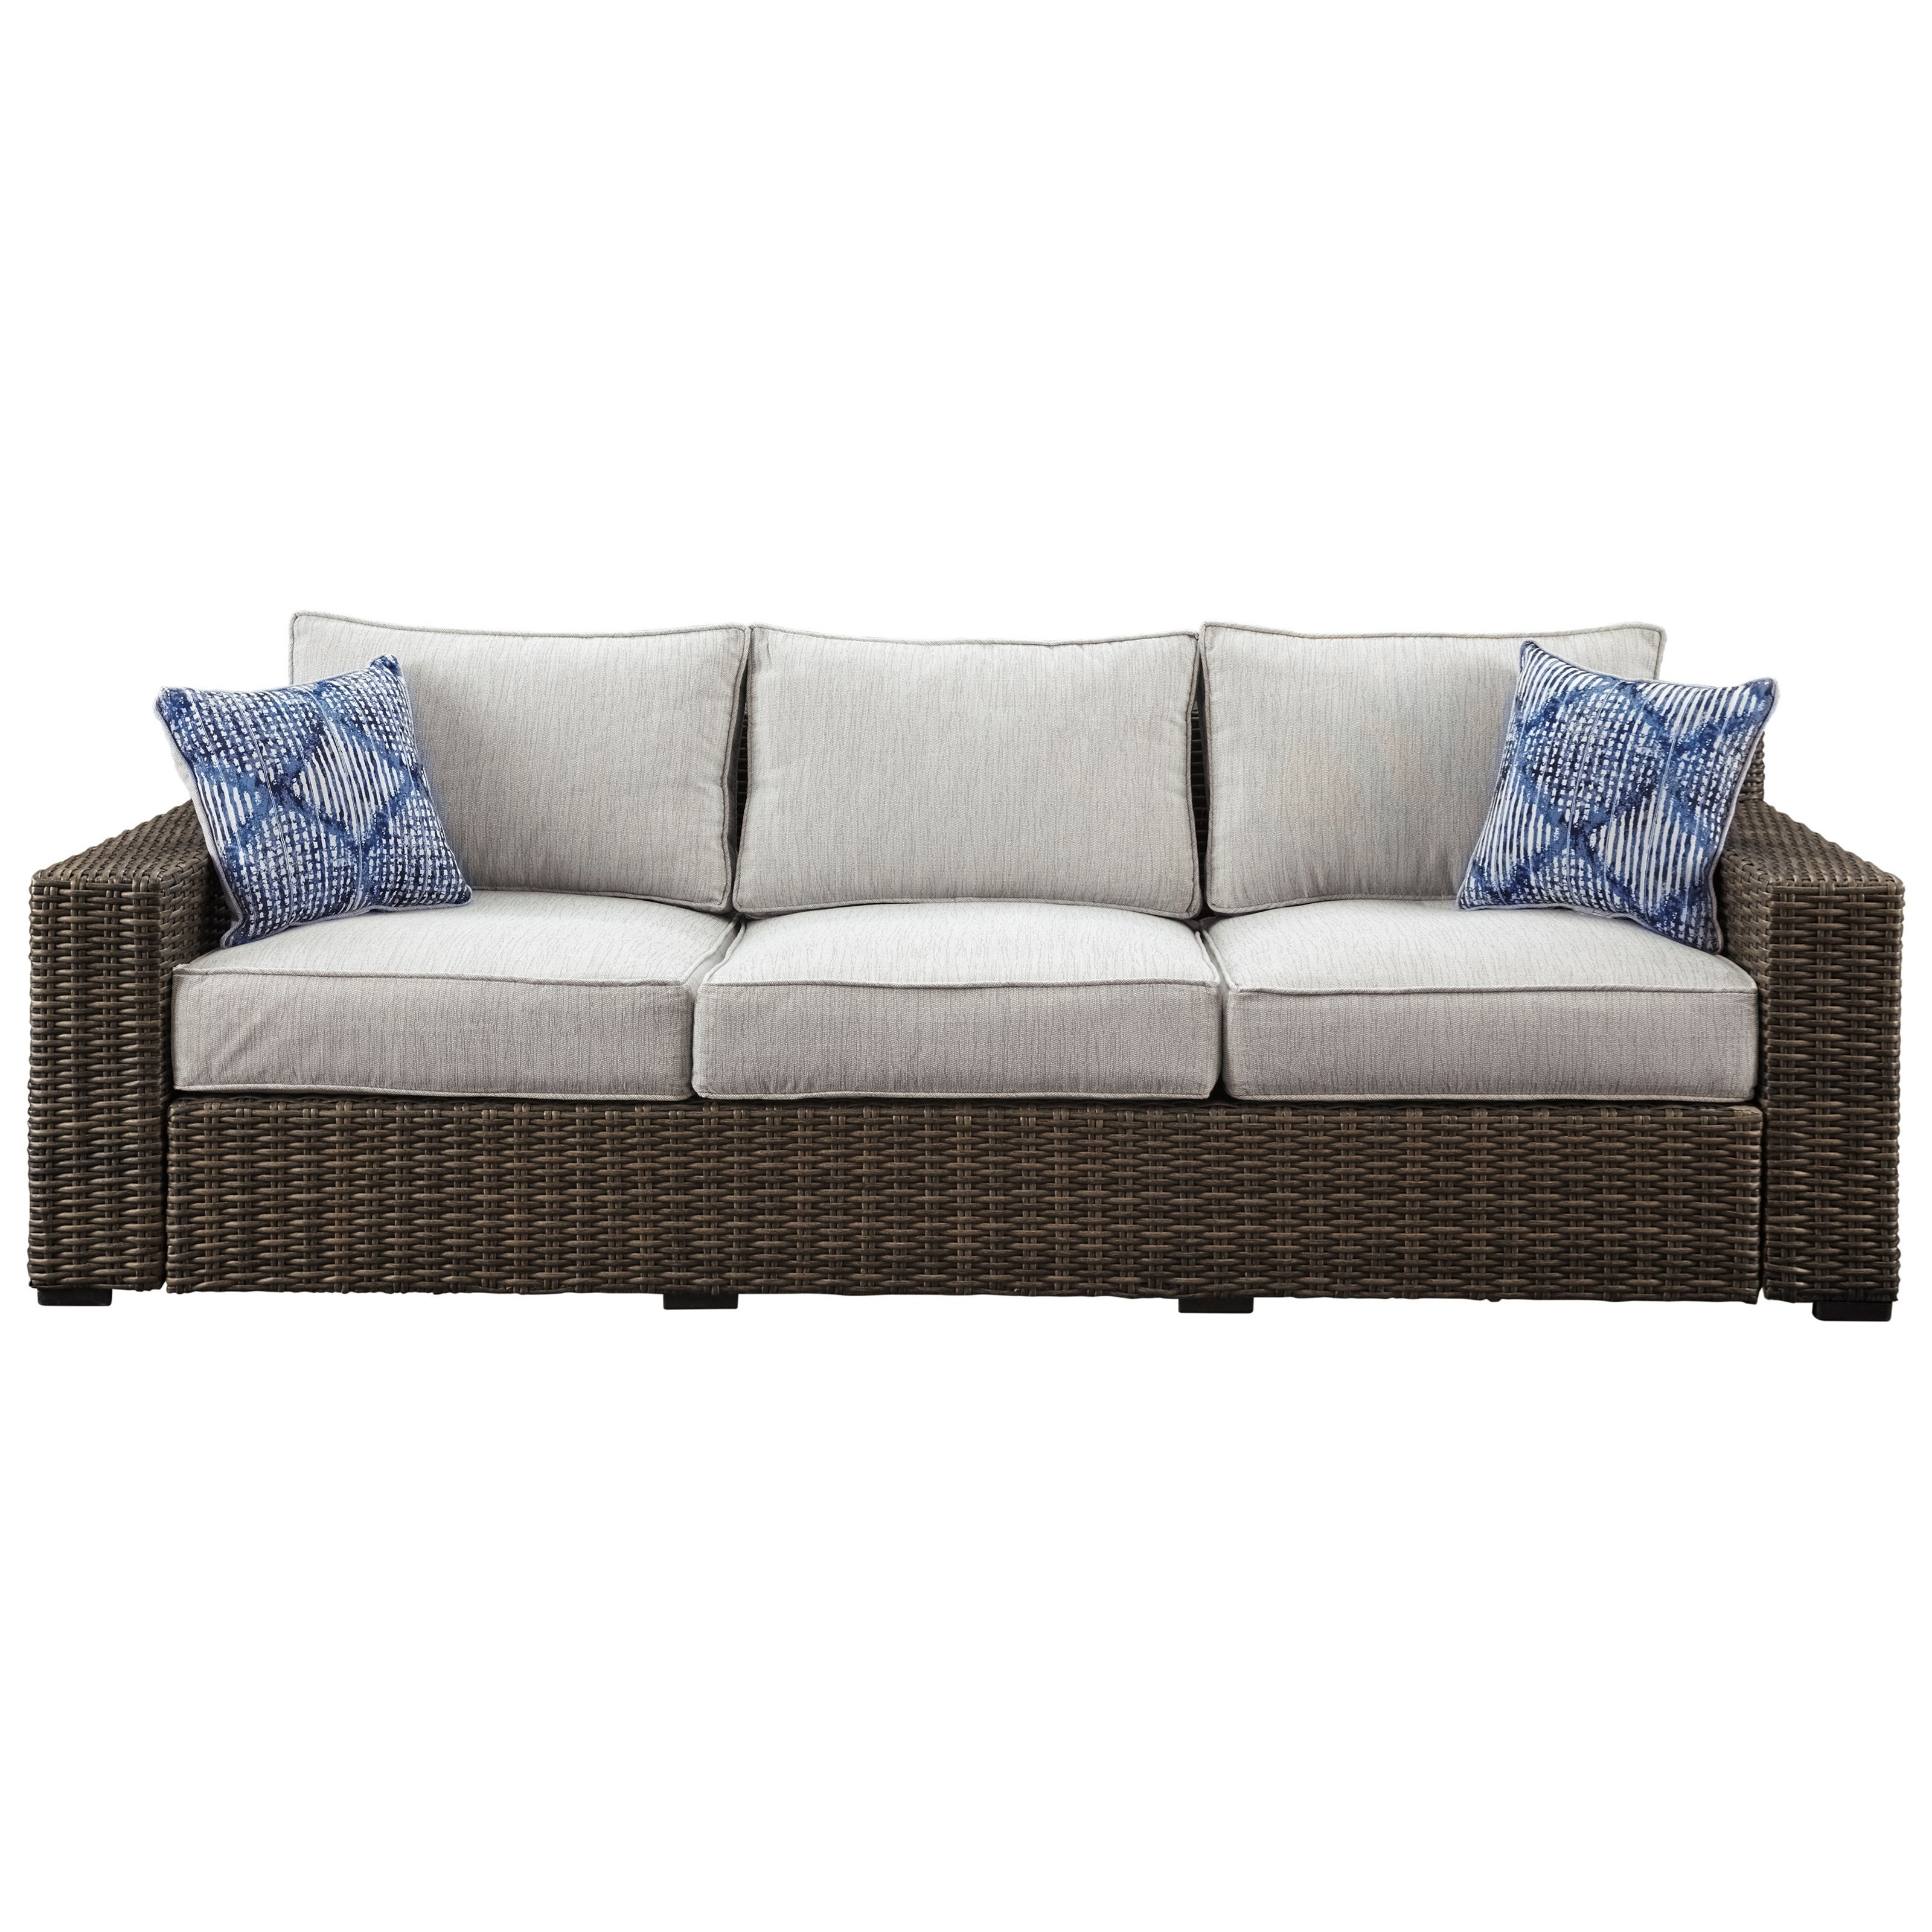 Beau Signature Design By Ashley Alta Grande Contemporary Outdoor Sofa With  Cushion